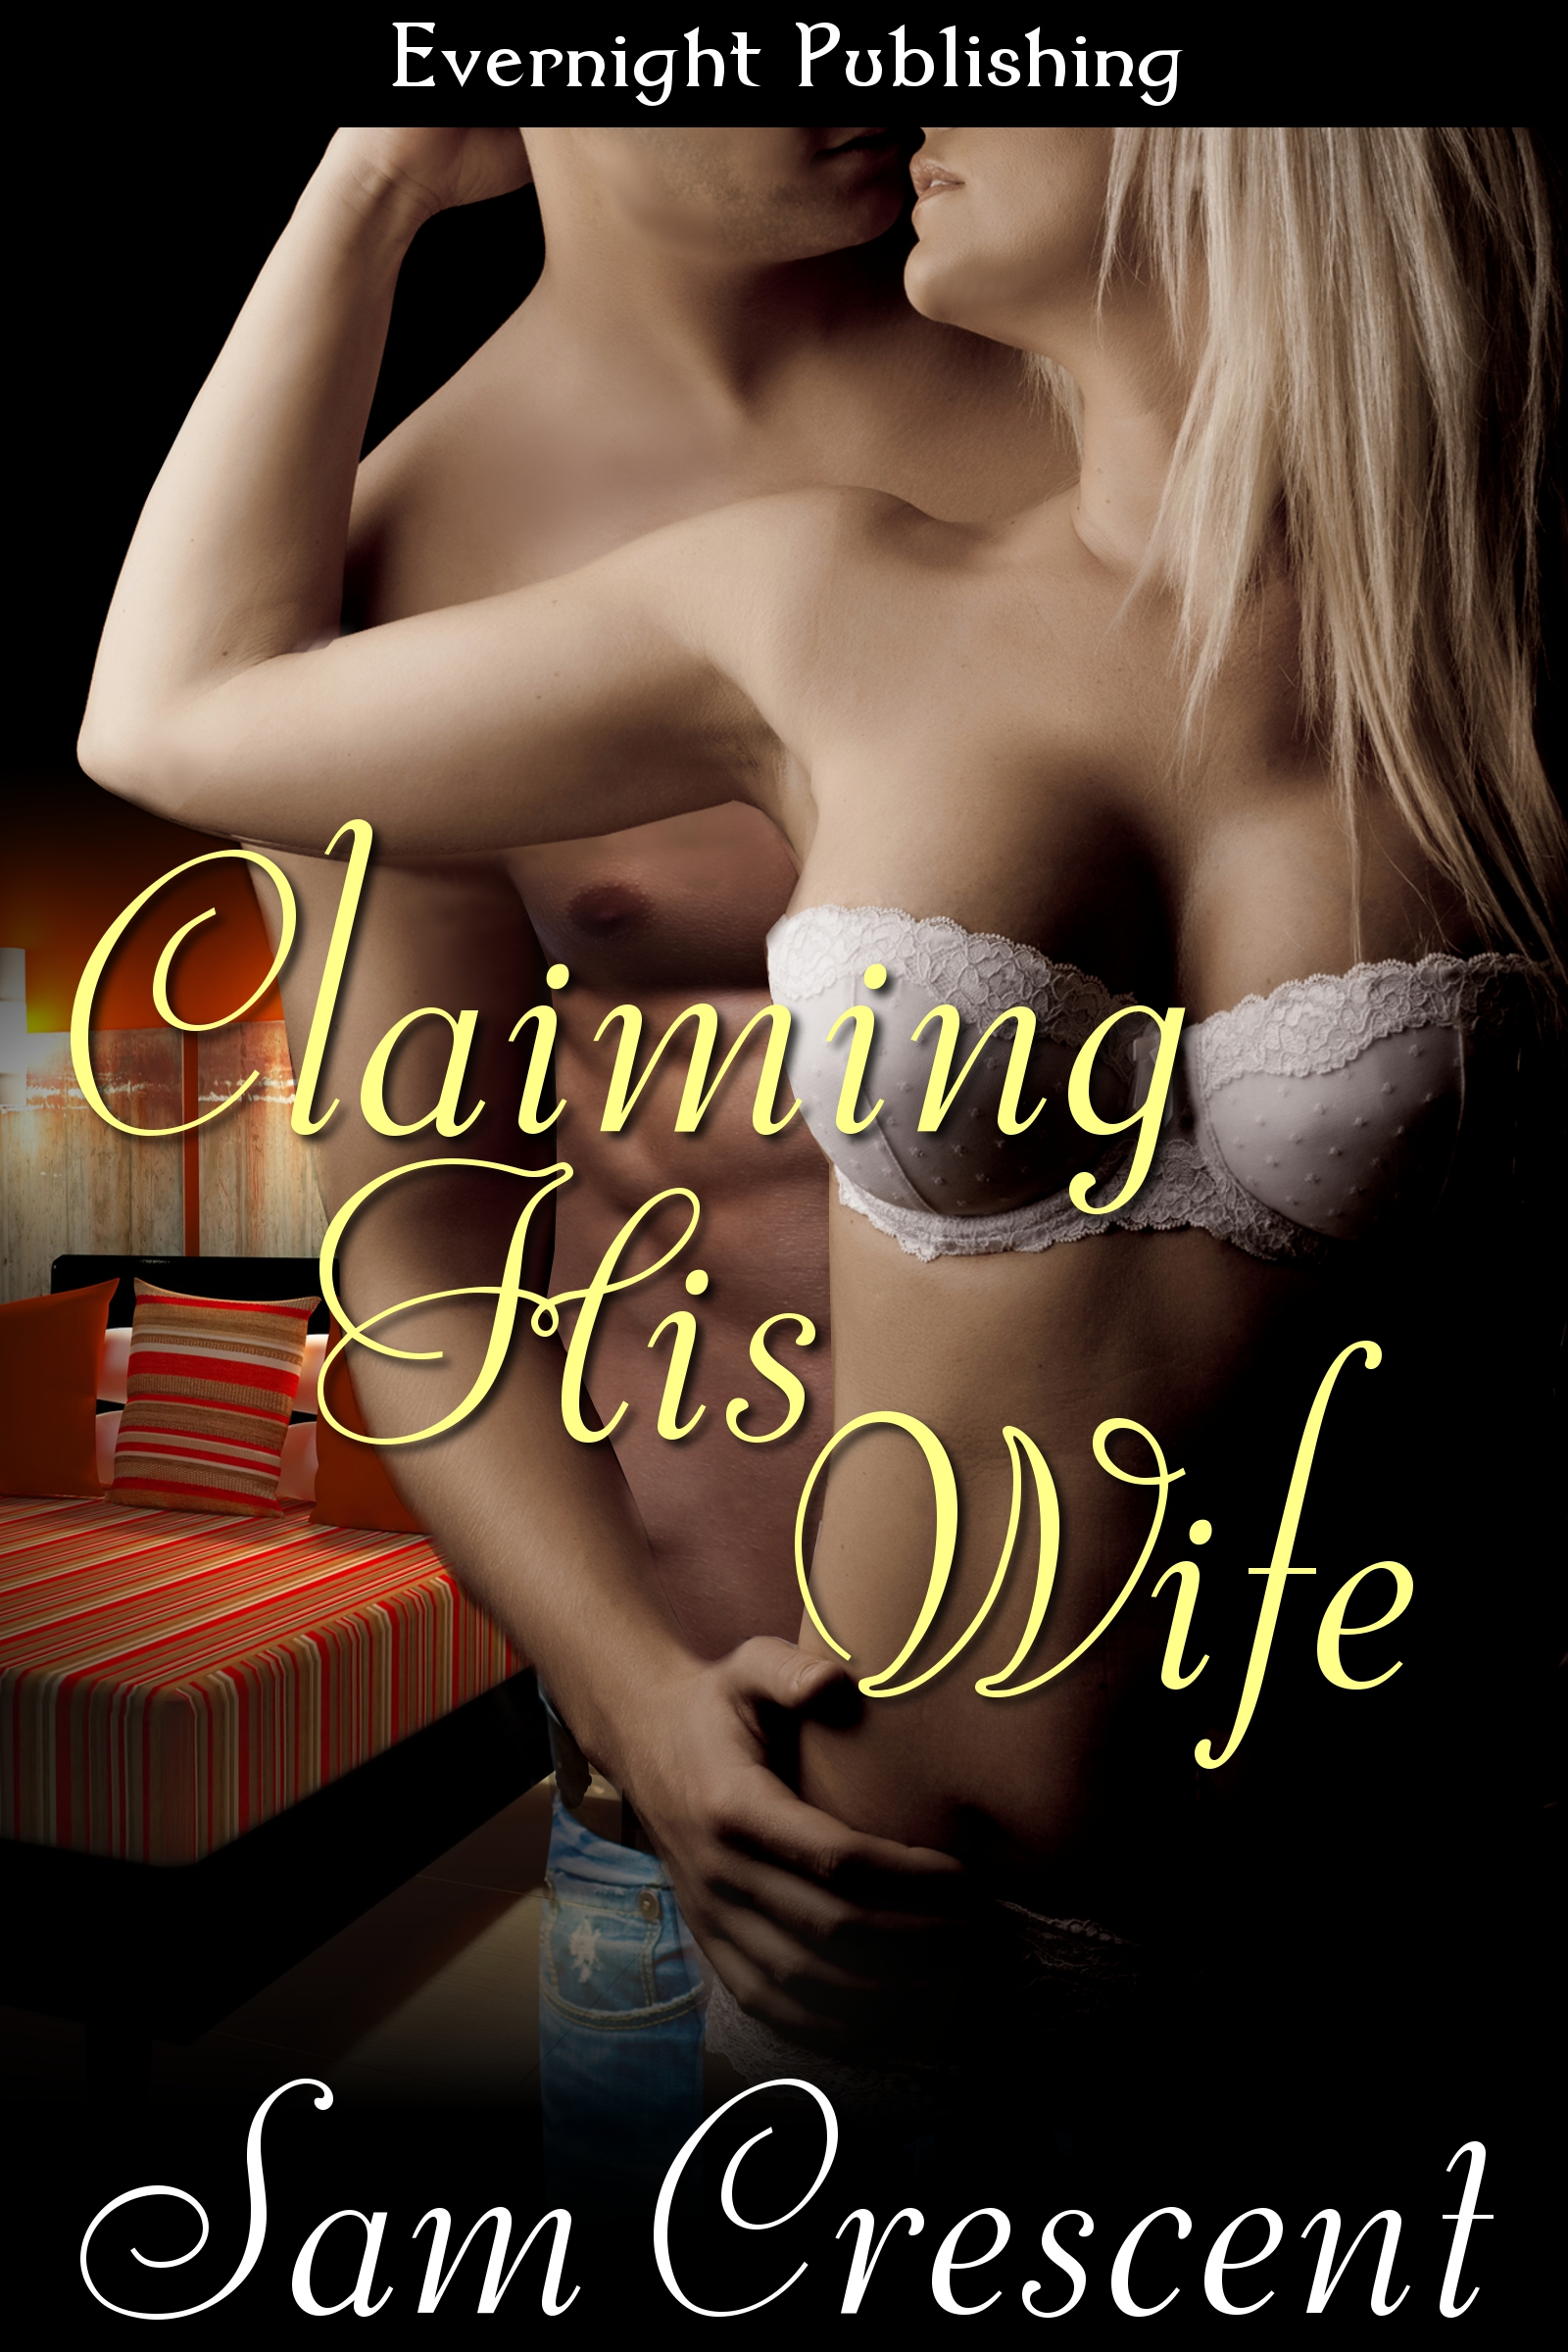 Sam Crescent - Claiming His Wife